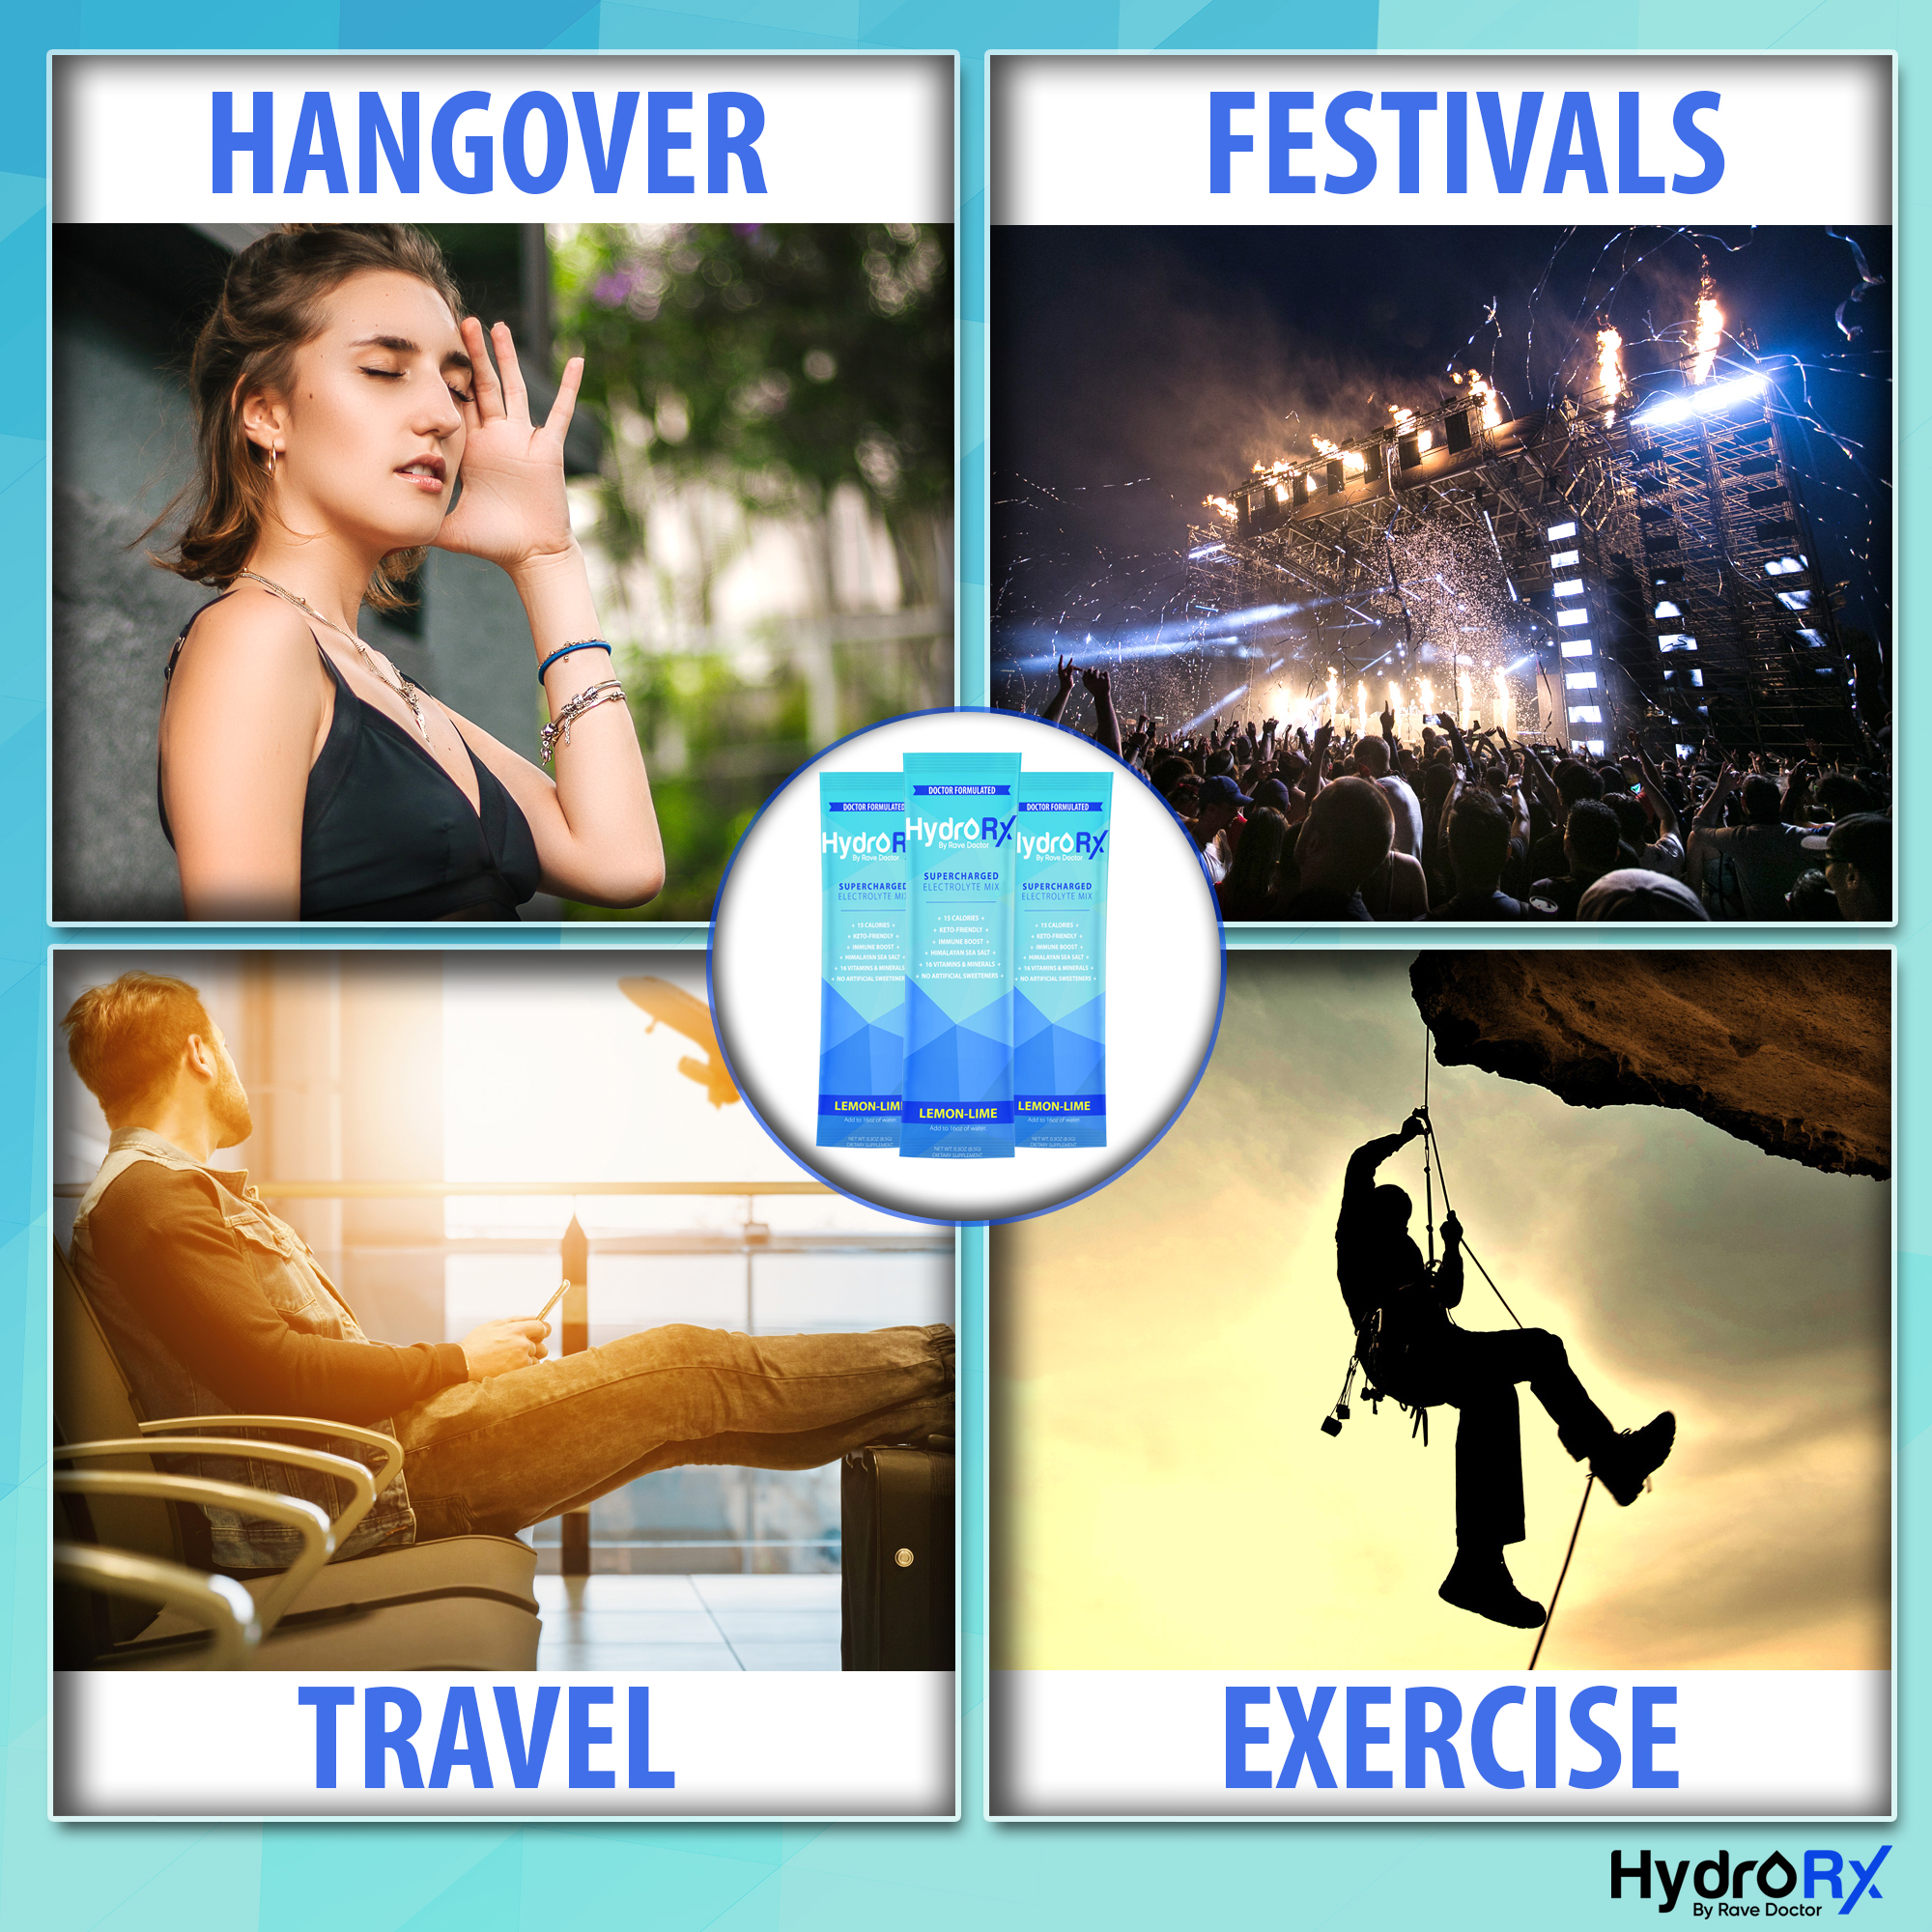 8 HydroRX by Rave Doctor Sports Drink For Hangovers, Festivals, Travel, and Exercise copy